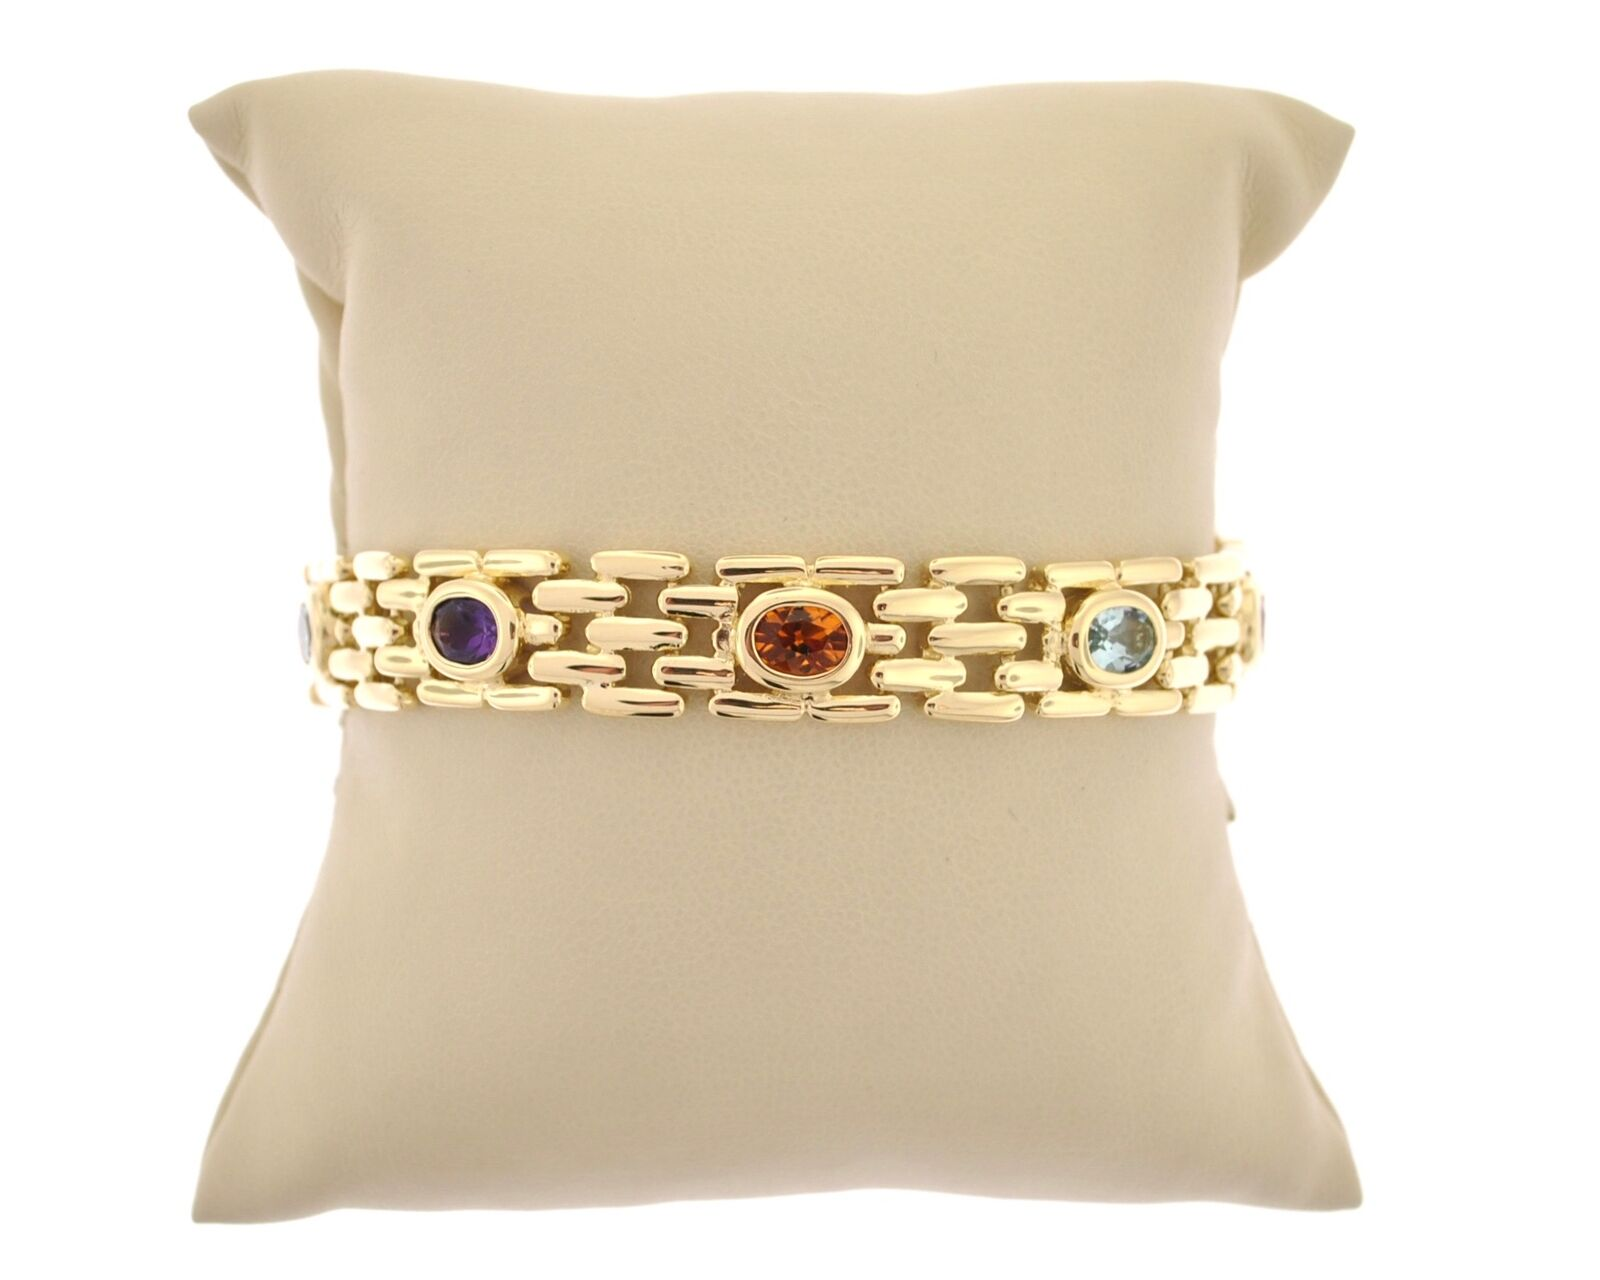 14K YELLOW gold BEZEL SET MULTI GEMSTONE BRACELET CITRINE AMETHYST blueE TOPAZ